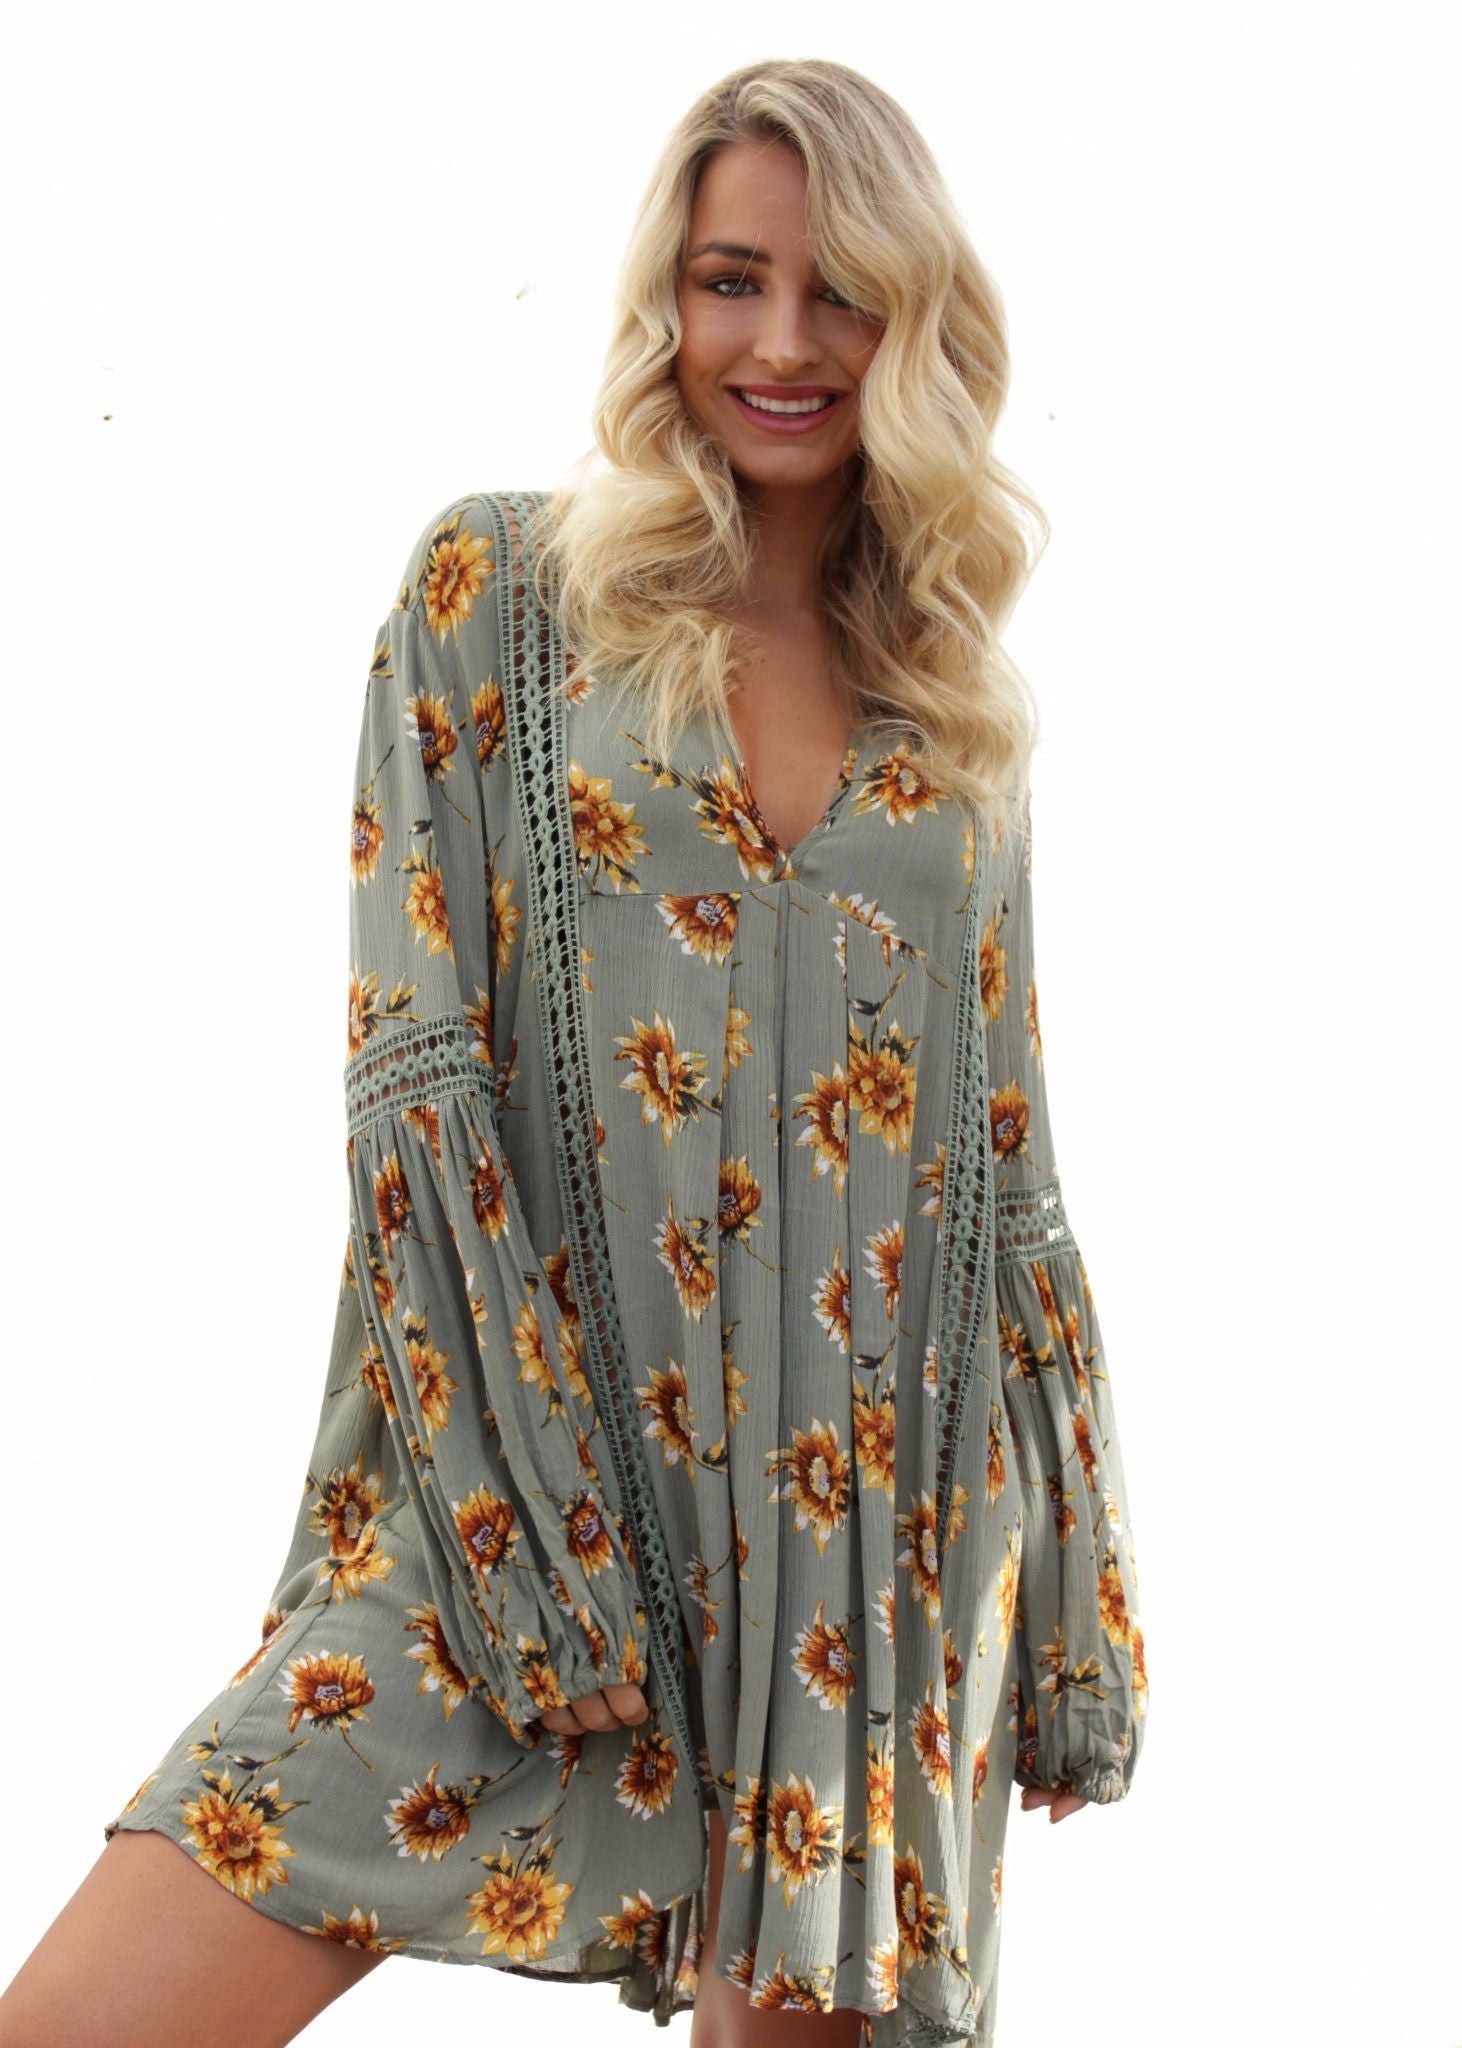 Break The Rules Tunic Dress - Sage